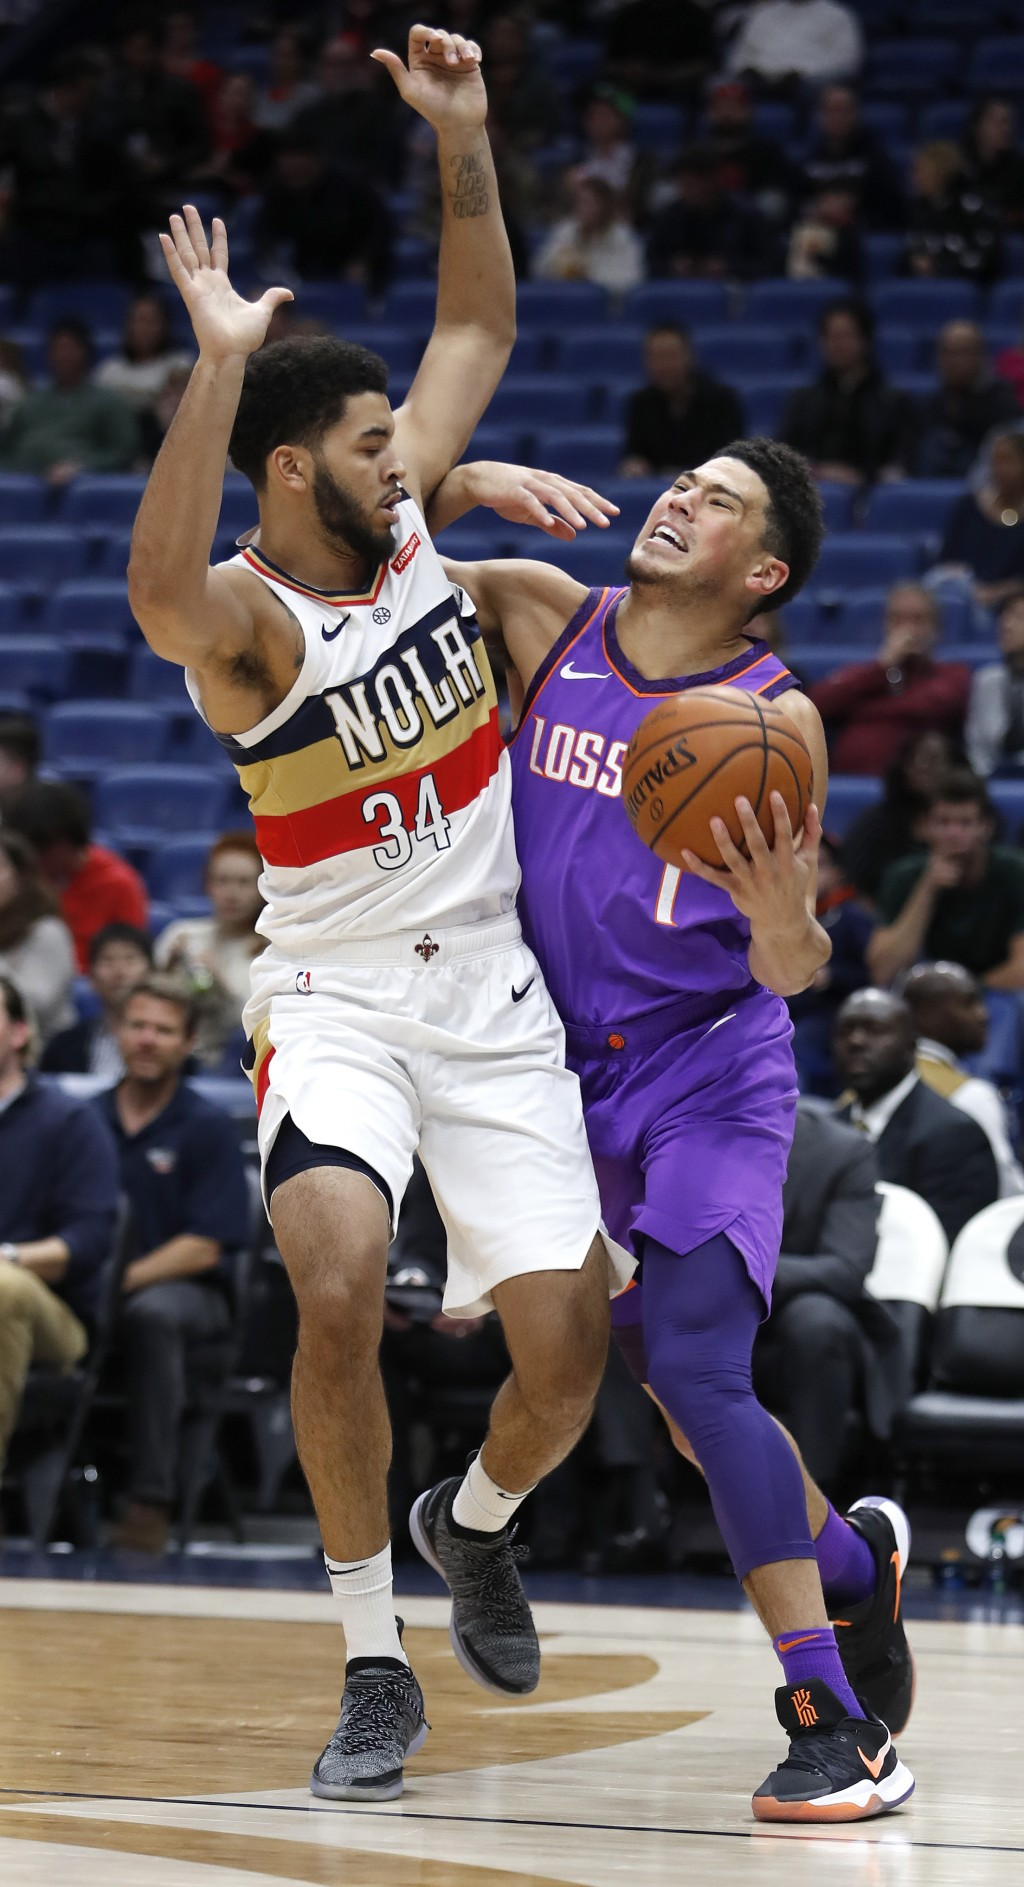 Phoenix Suns guard Devin Booker (1) is defended by New Orleans Pelicans guard Kenrich Williams (34) during the first half of an NBA basketball game in